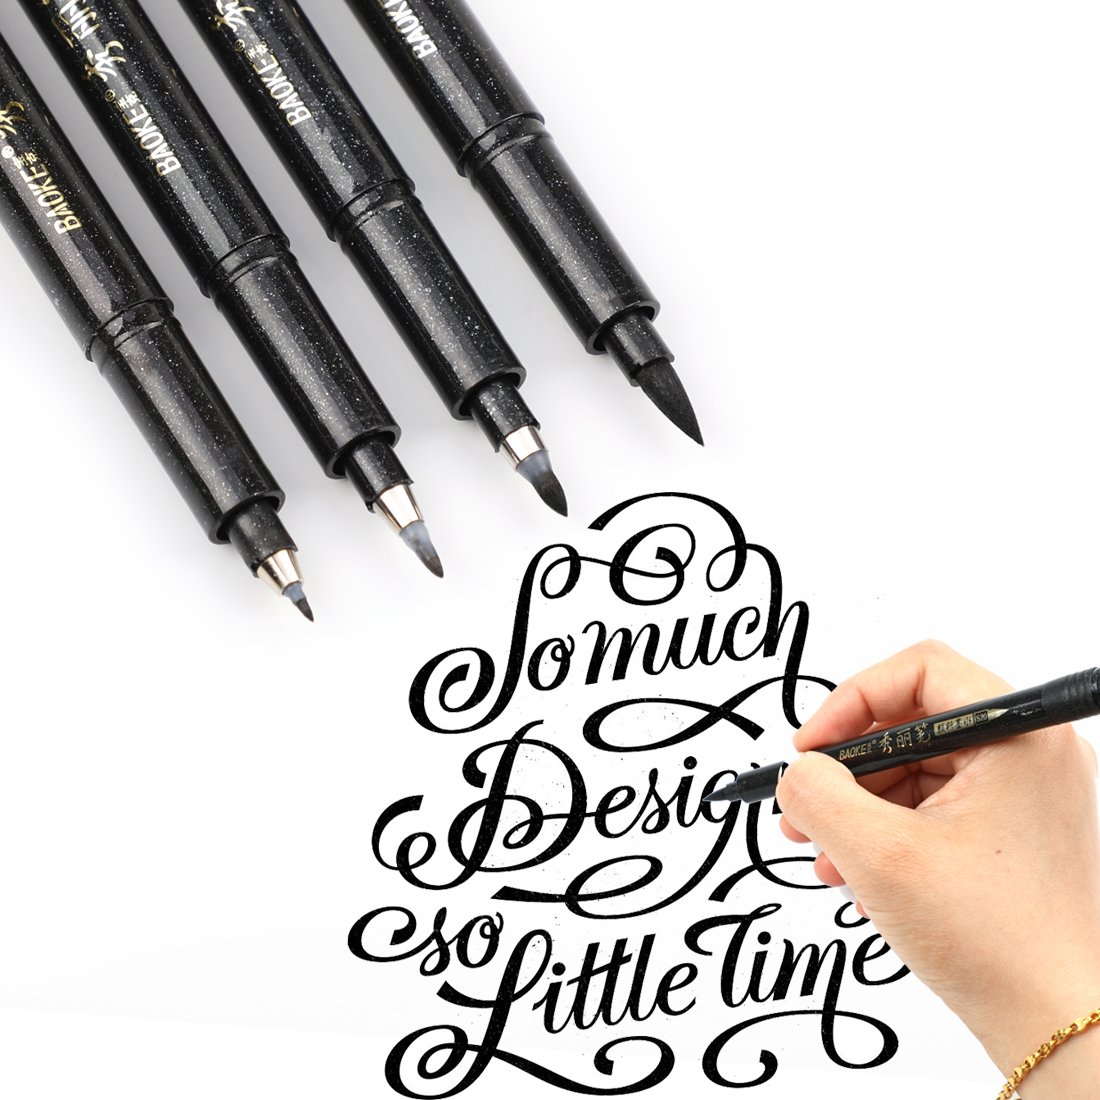 Refillable Brush Marker Pens for Hand Lettering - 4 Size Black Calligraphy Ink Pen for Beginners Writing, Signature, Illustration, Design by BOXUN (Image #2)